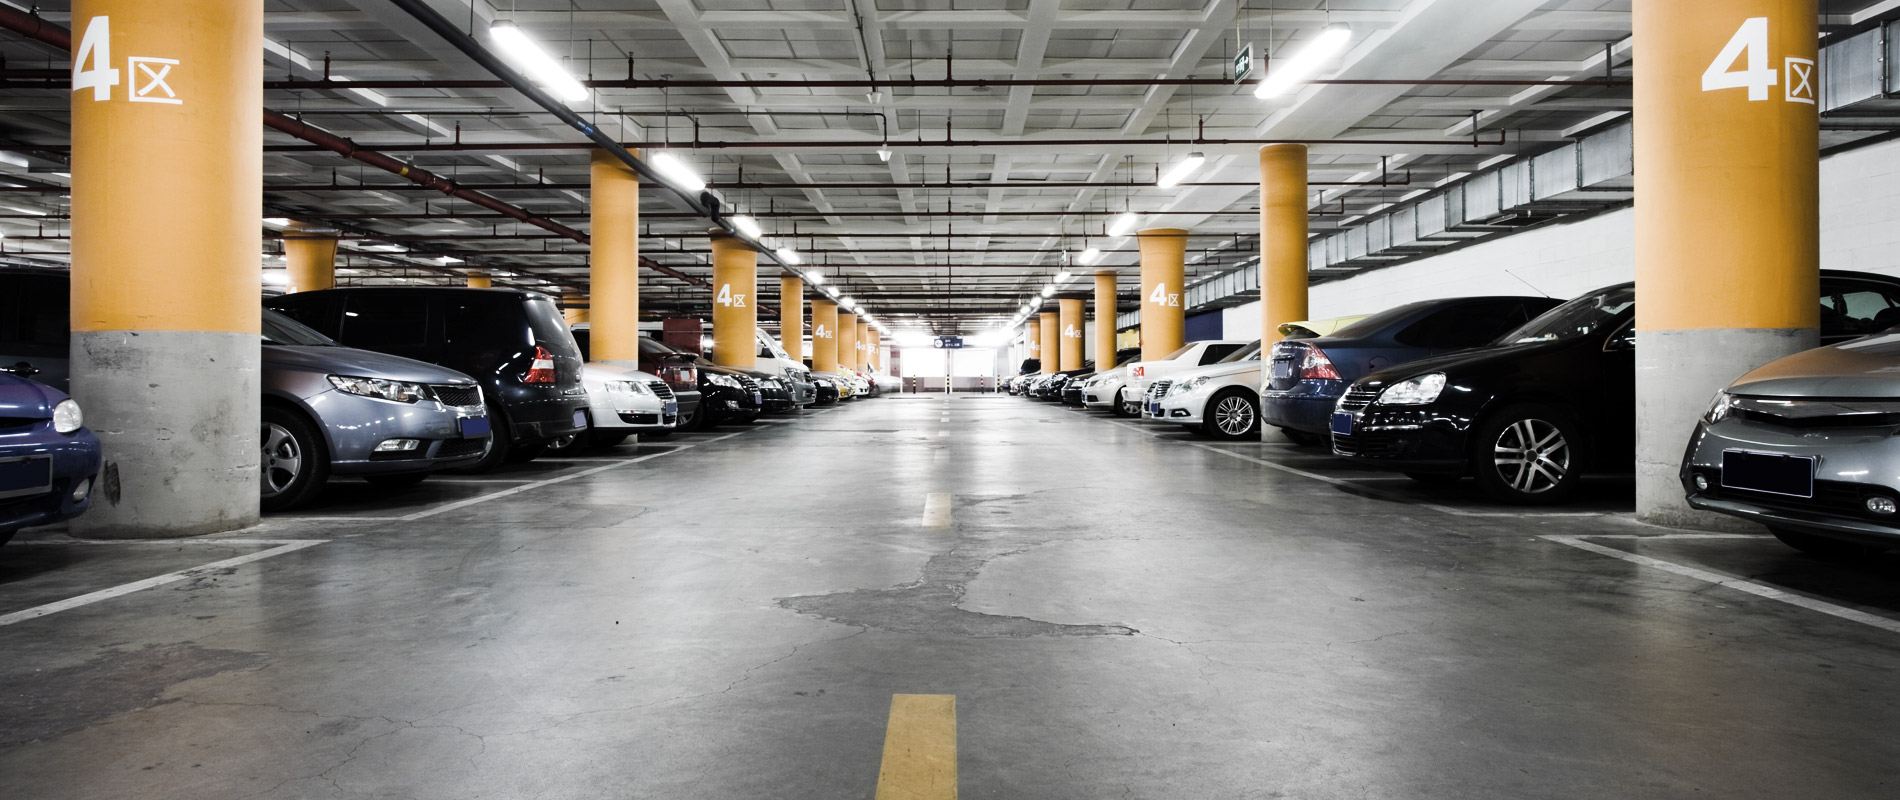 Find A Car Parking Space